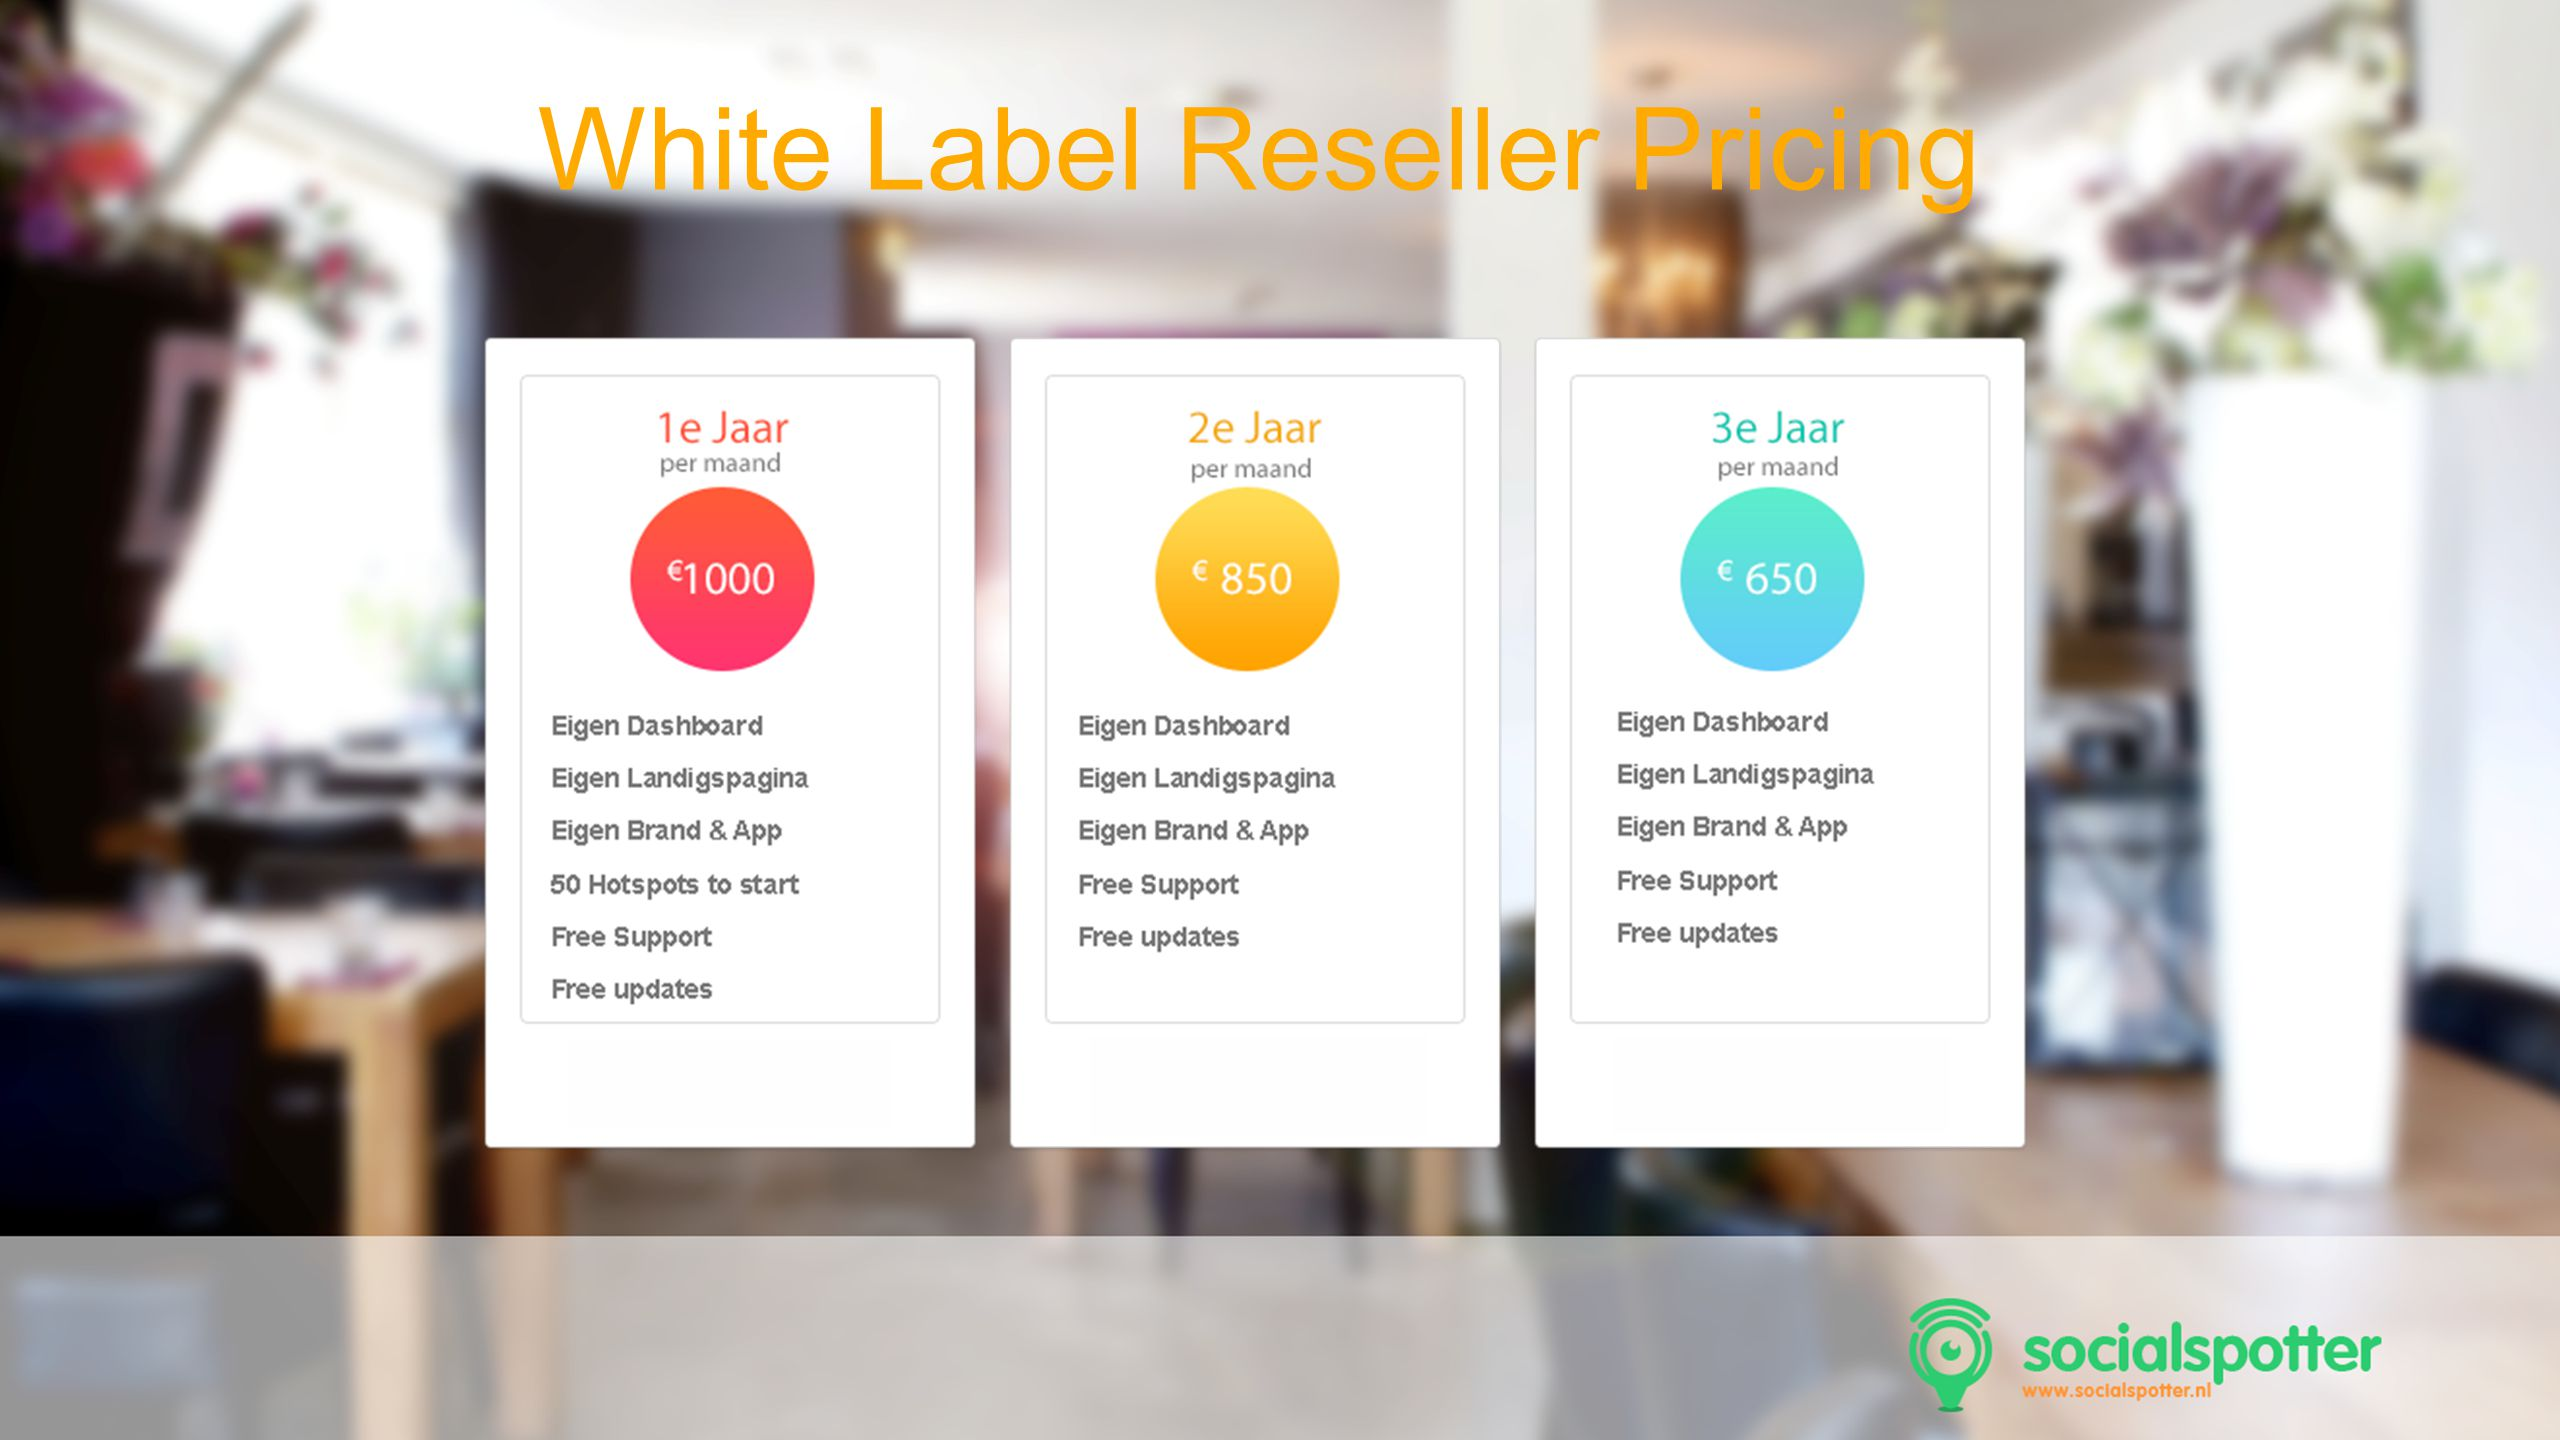 White Label Reseller Pricing